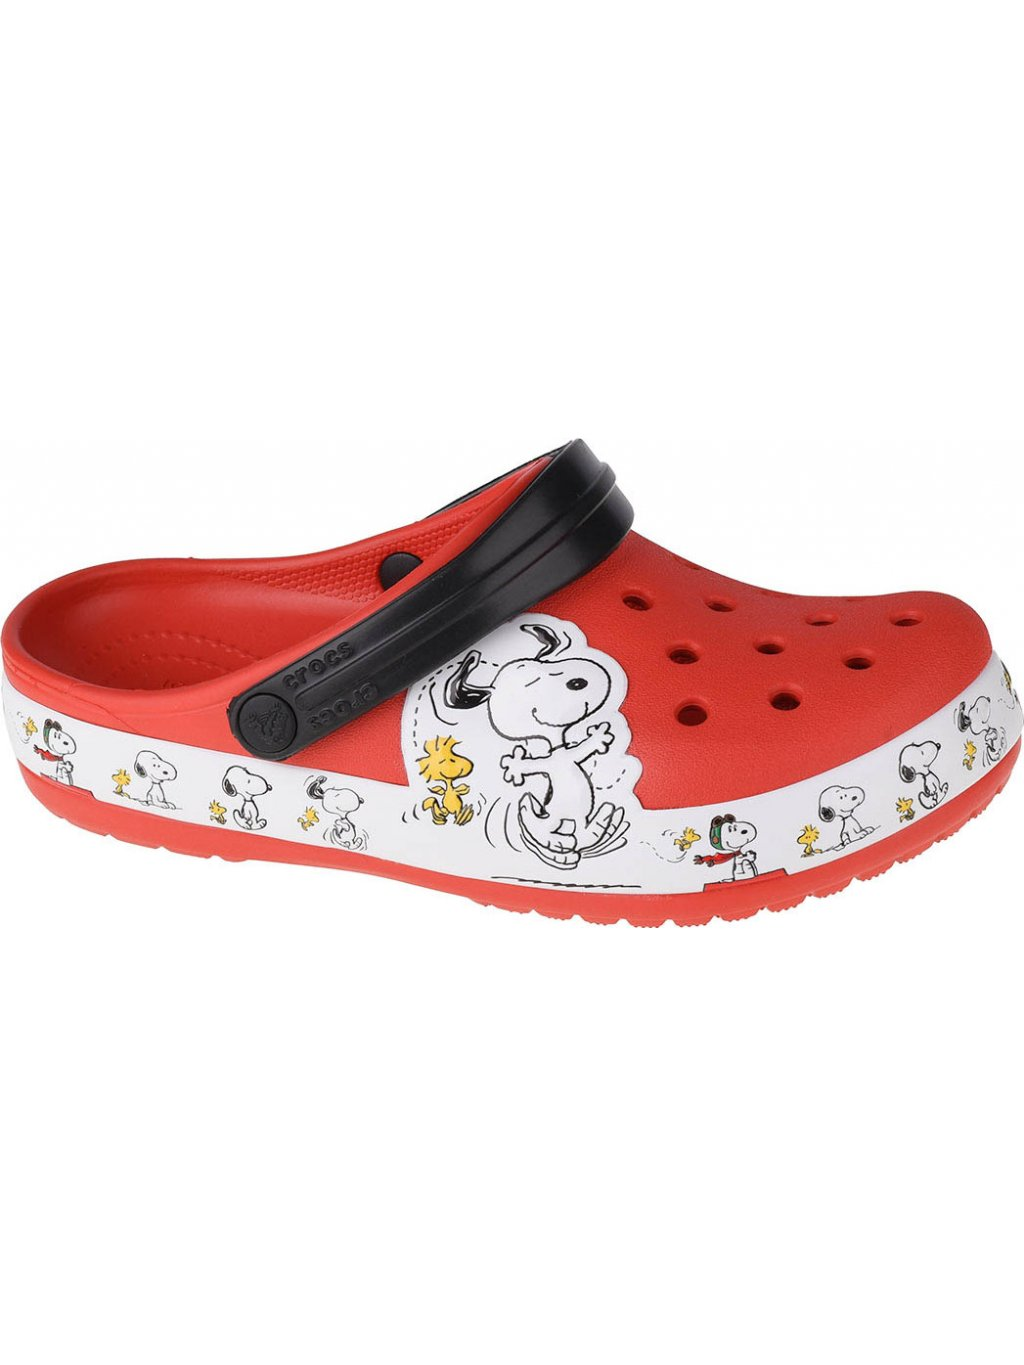 CROCS FUN LAB SNOOPY WOODSTOCK K CLOG 206176-8C1